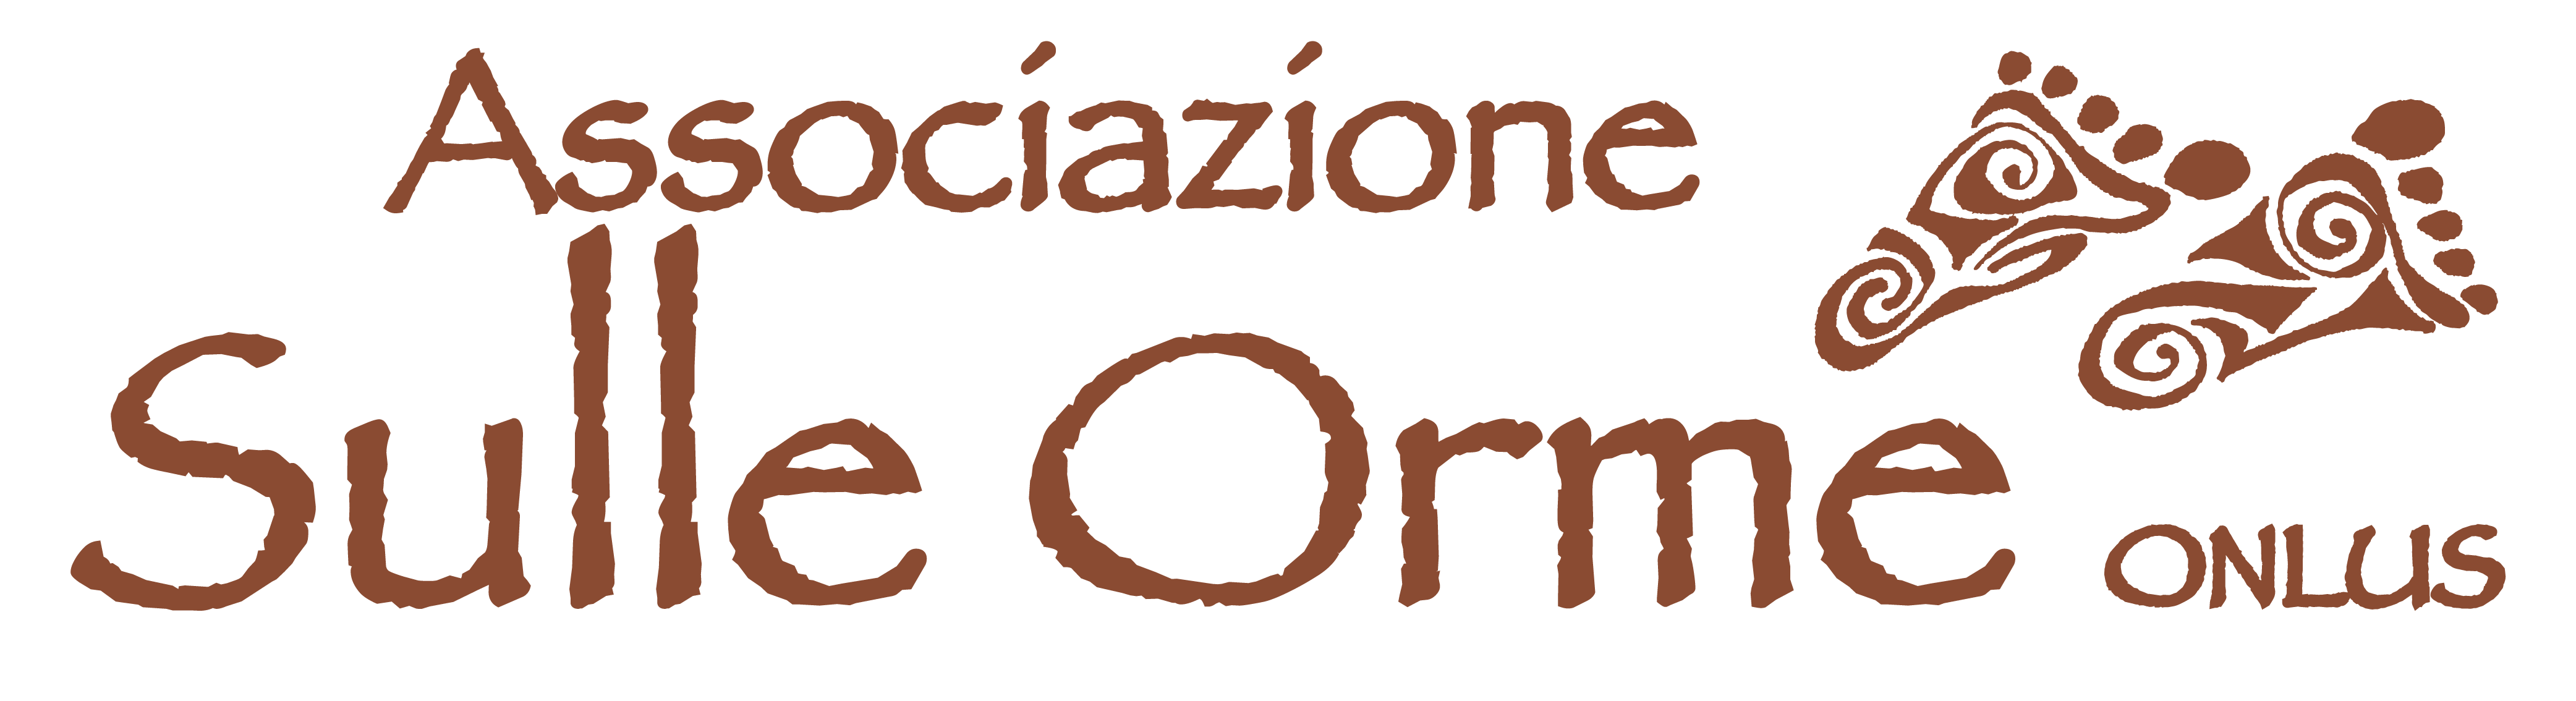 Ass. Sulle Orme Onlus